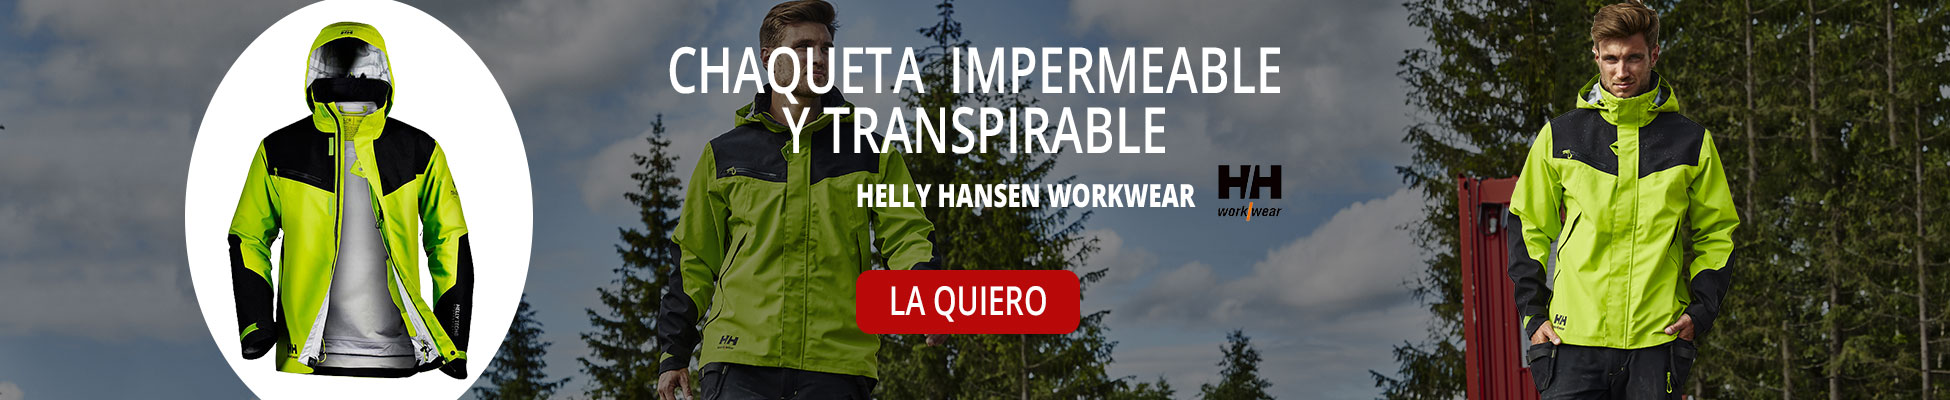 Chaqueta impermeable transpirable Helly Hansen